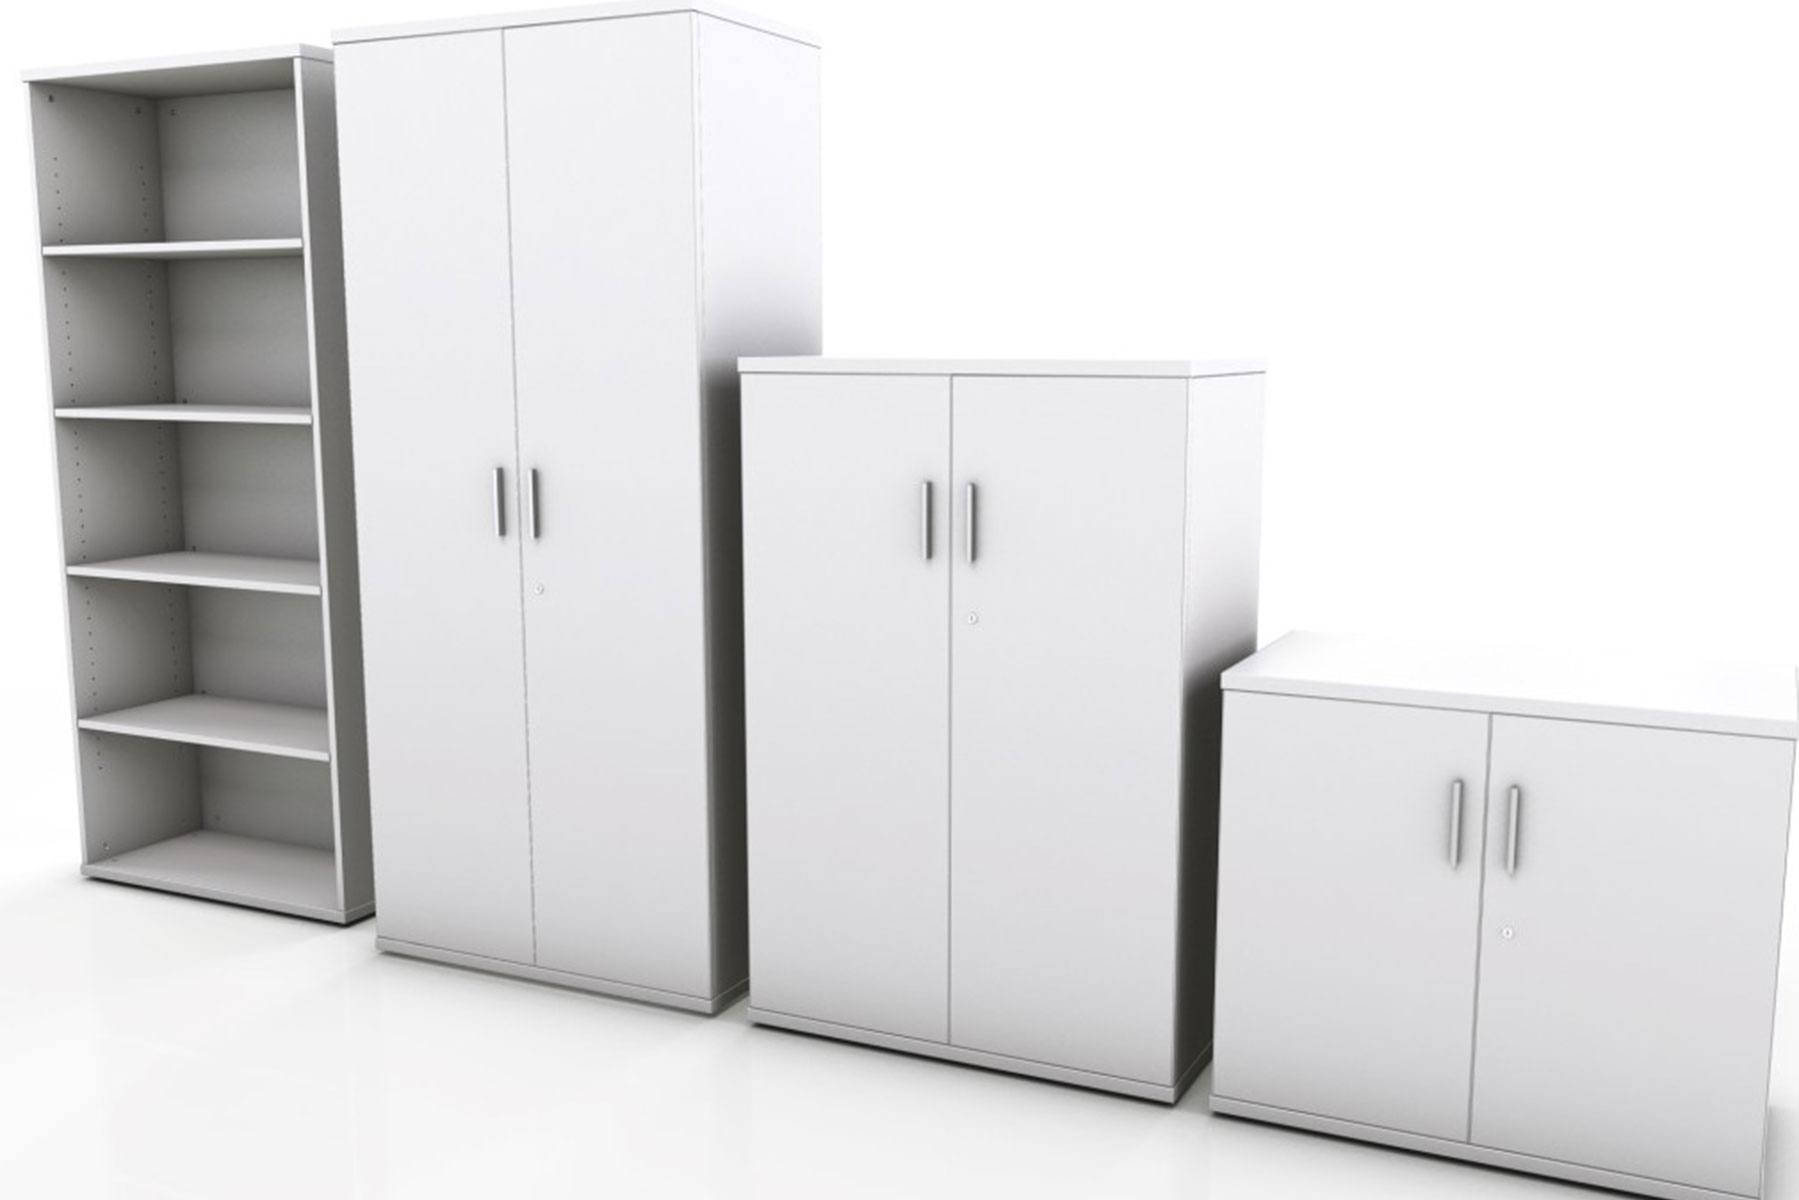 files-and-storage-talimar-systems-case-goods